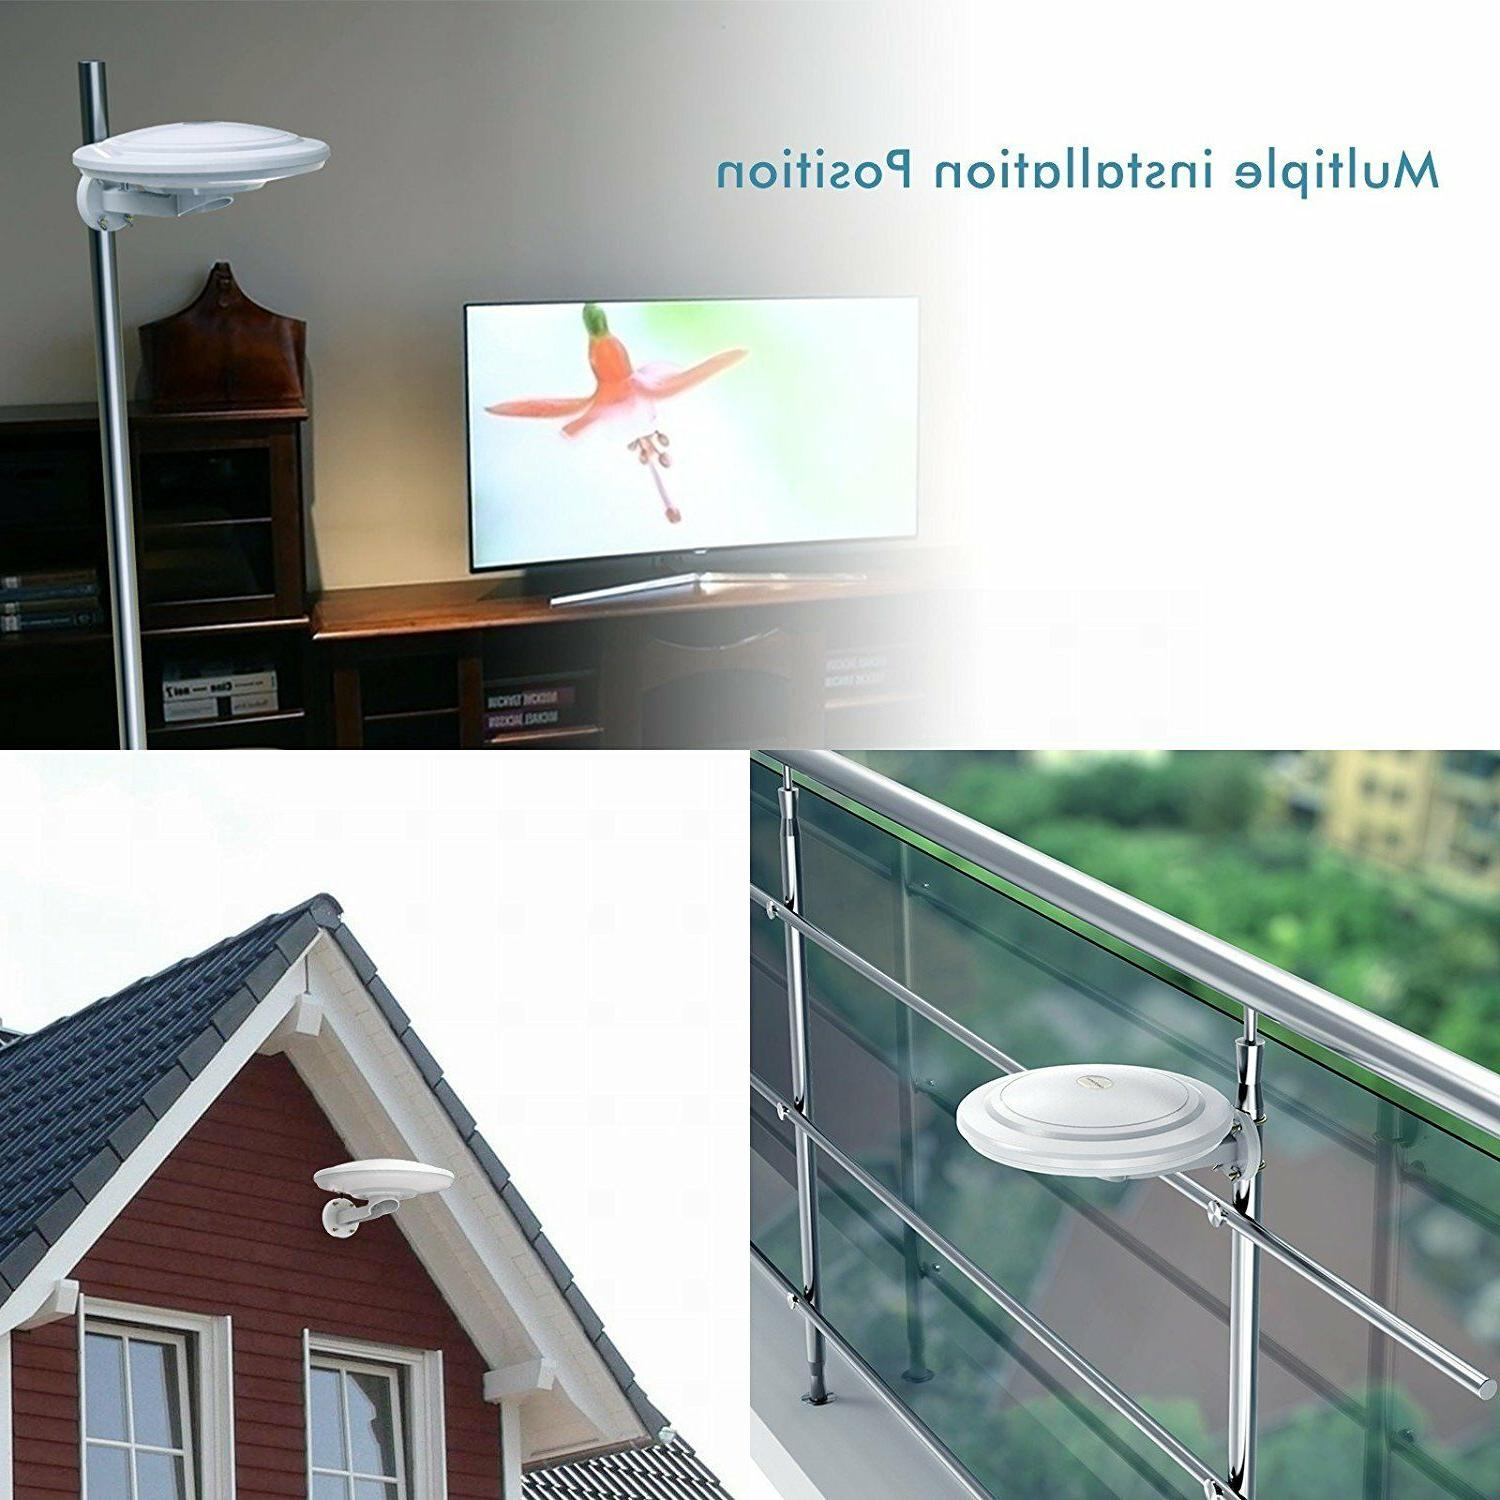 360 Reception Omni-directional Amplified Outdoor Antenna